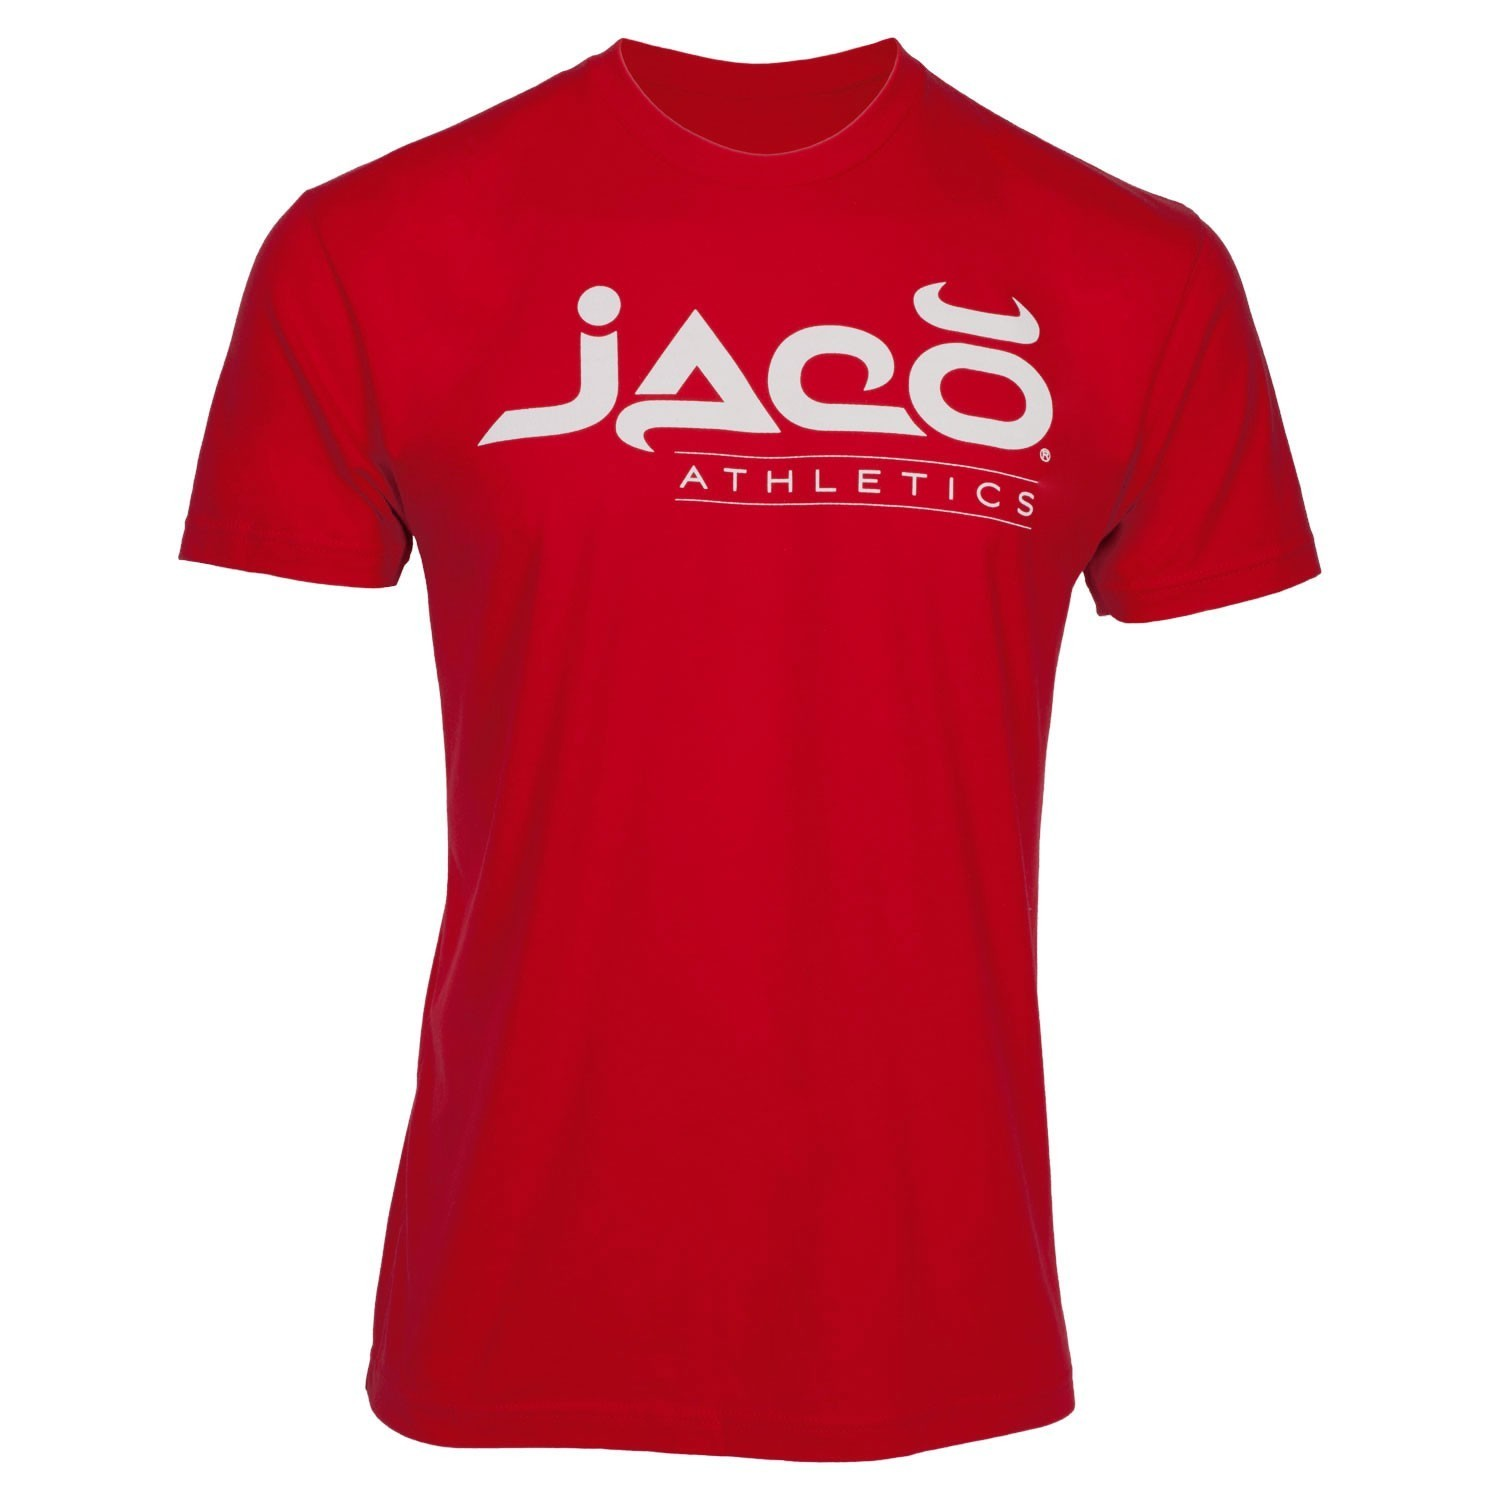 JACO Athletics Crew (Red/White)